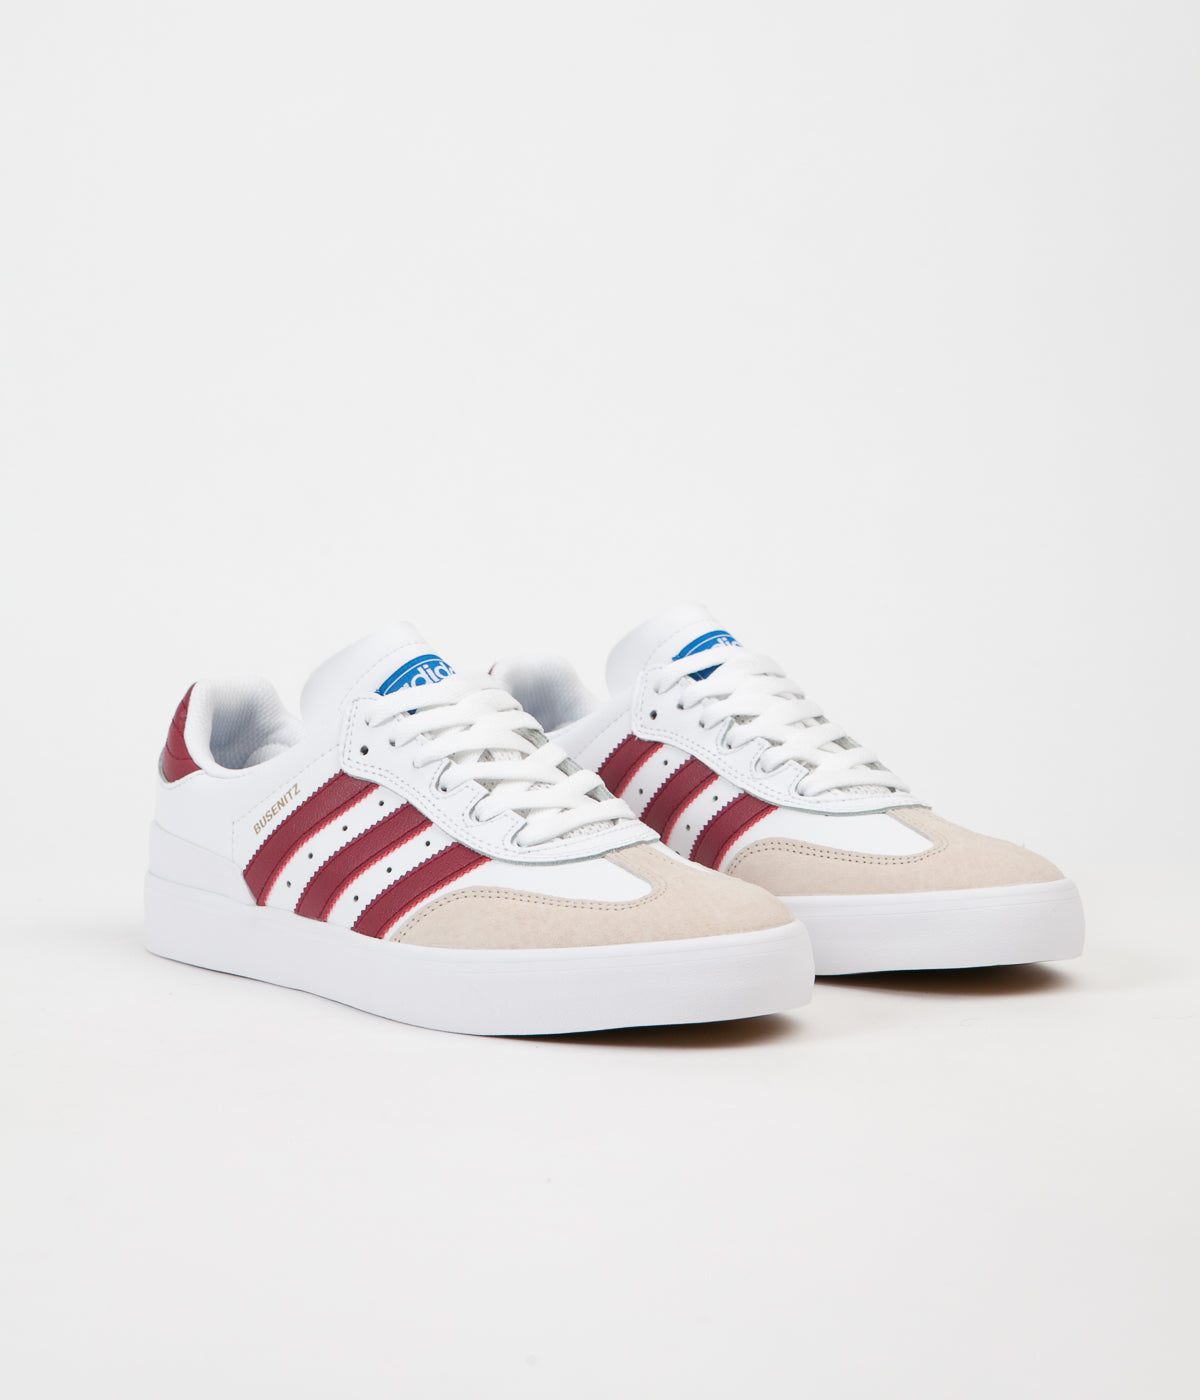 Adidas Busenitz Vulc RX Shoes - White / Collegiate Burgundy / Bluebird